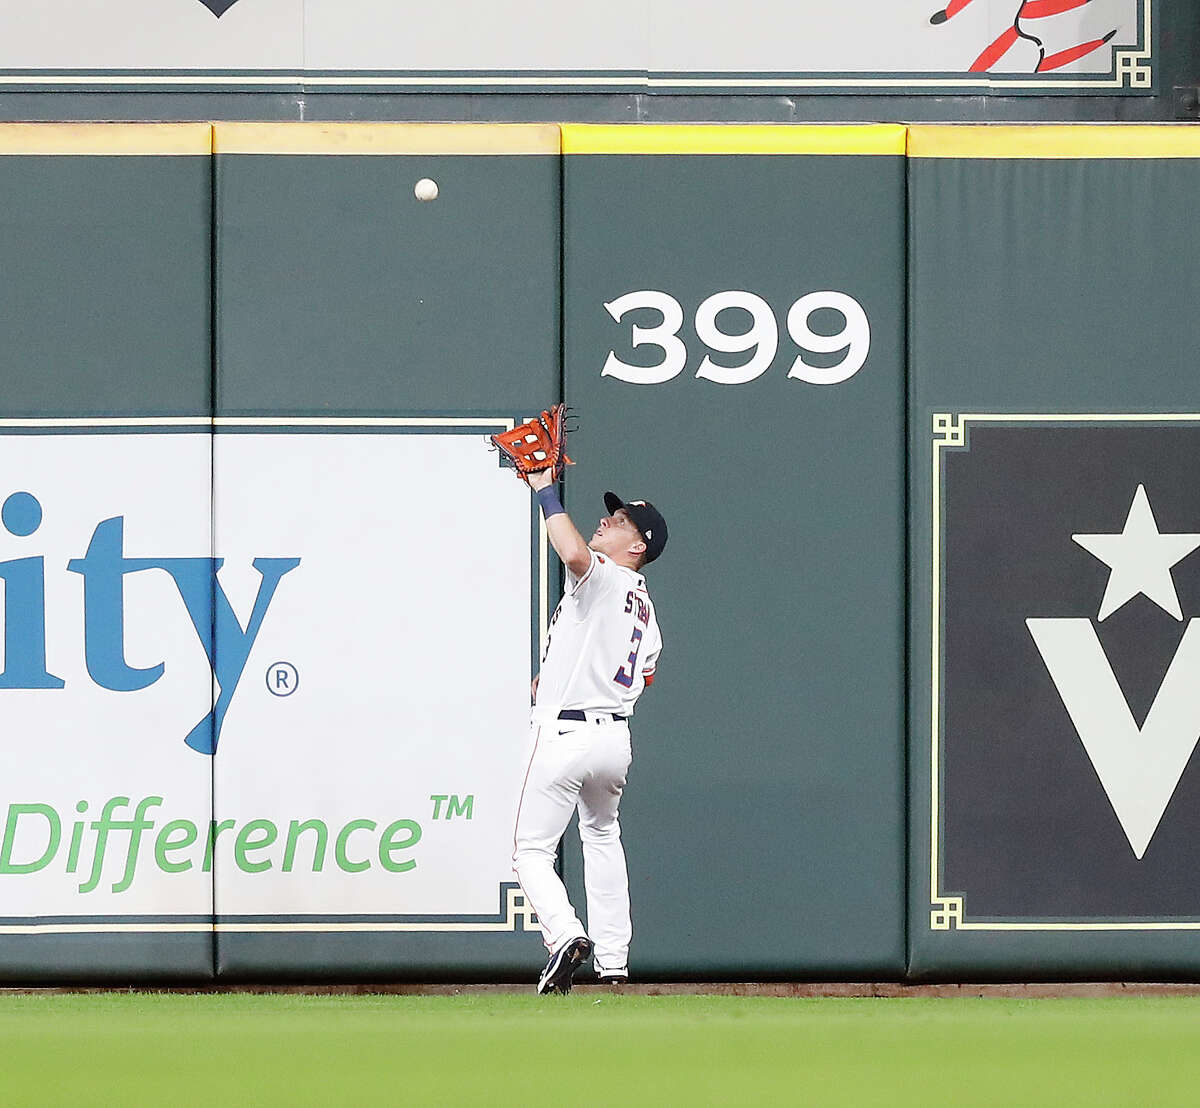 Houston Astros center fielder Myles Straw (3) goes back to catch Los Angeles Angels Mike Trout's fly out to end an MLB baseball game at Minute Maid Park, Tuesday, May 11, 2021, in Houston. Astros won the game 5-1.